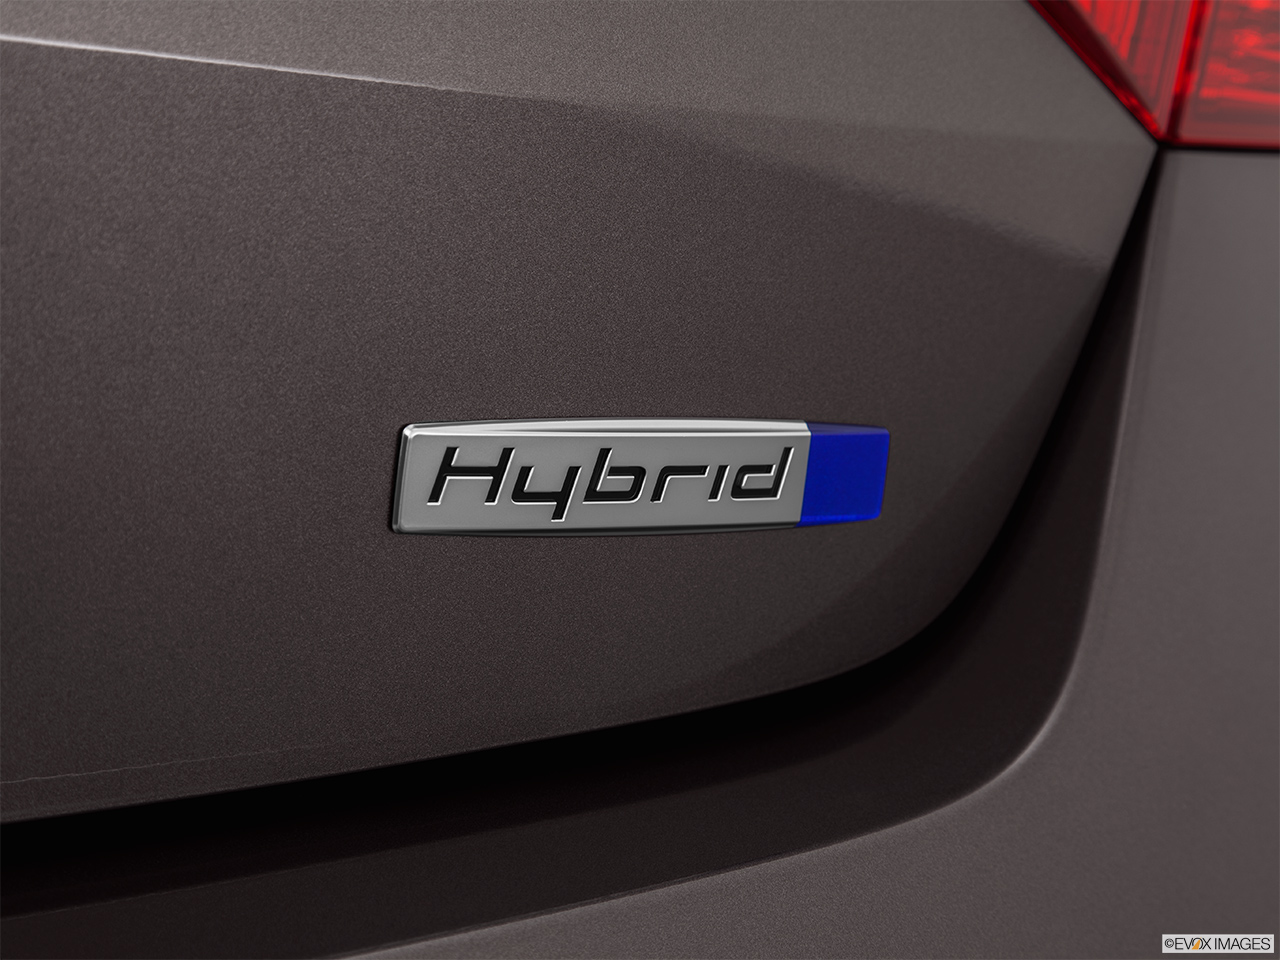 2014 Acura ILX Hybrid Base Exterior Bonus Shots (no set spec)